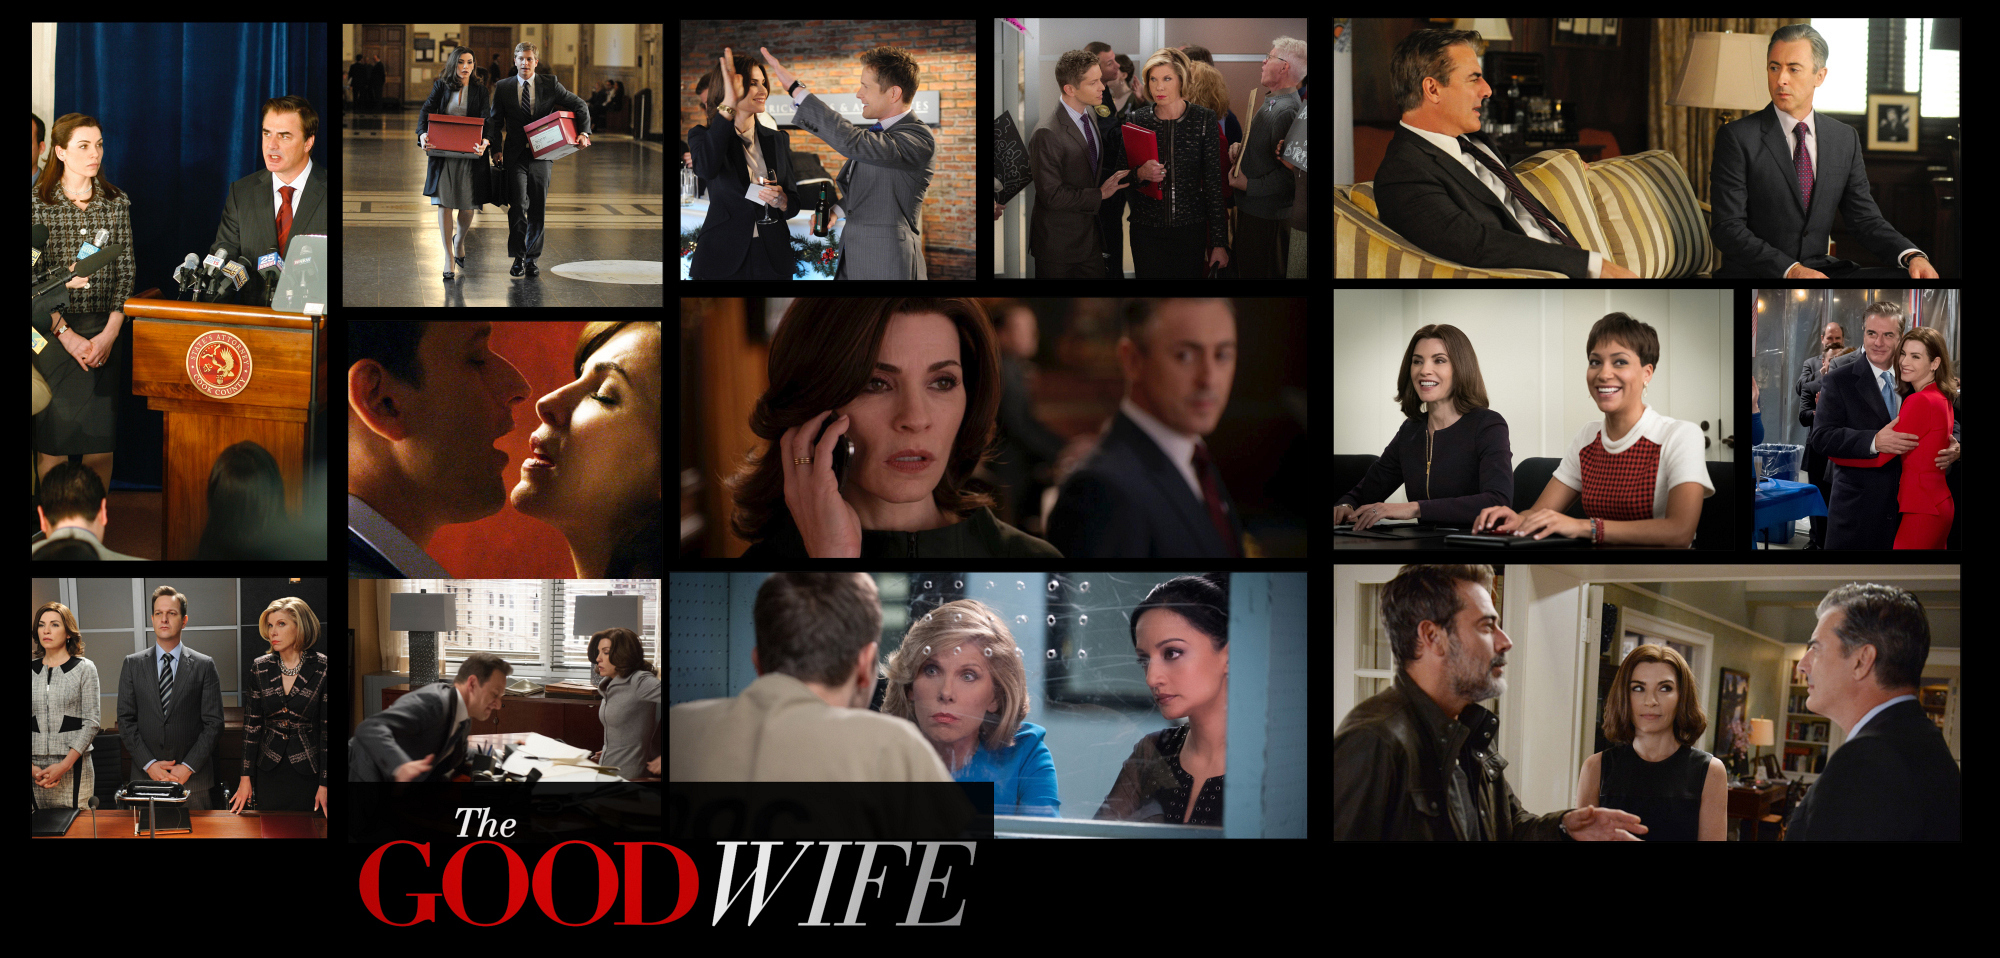 The Good Wife will end its great run.